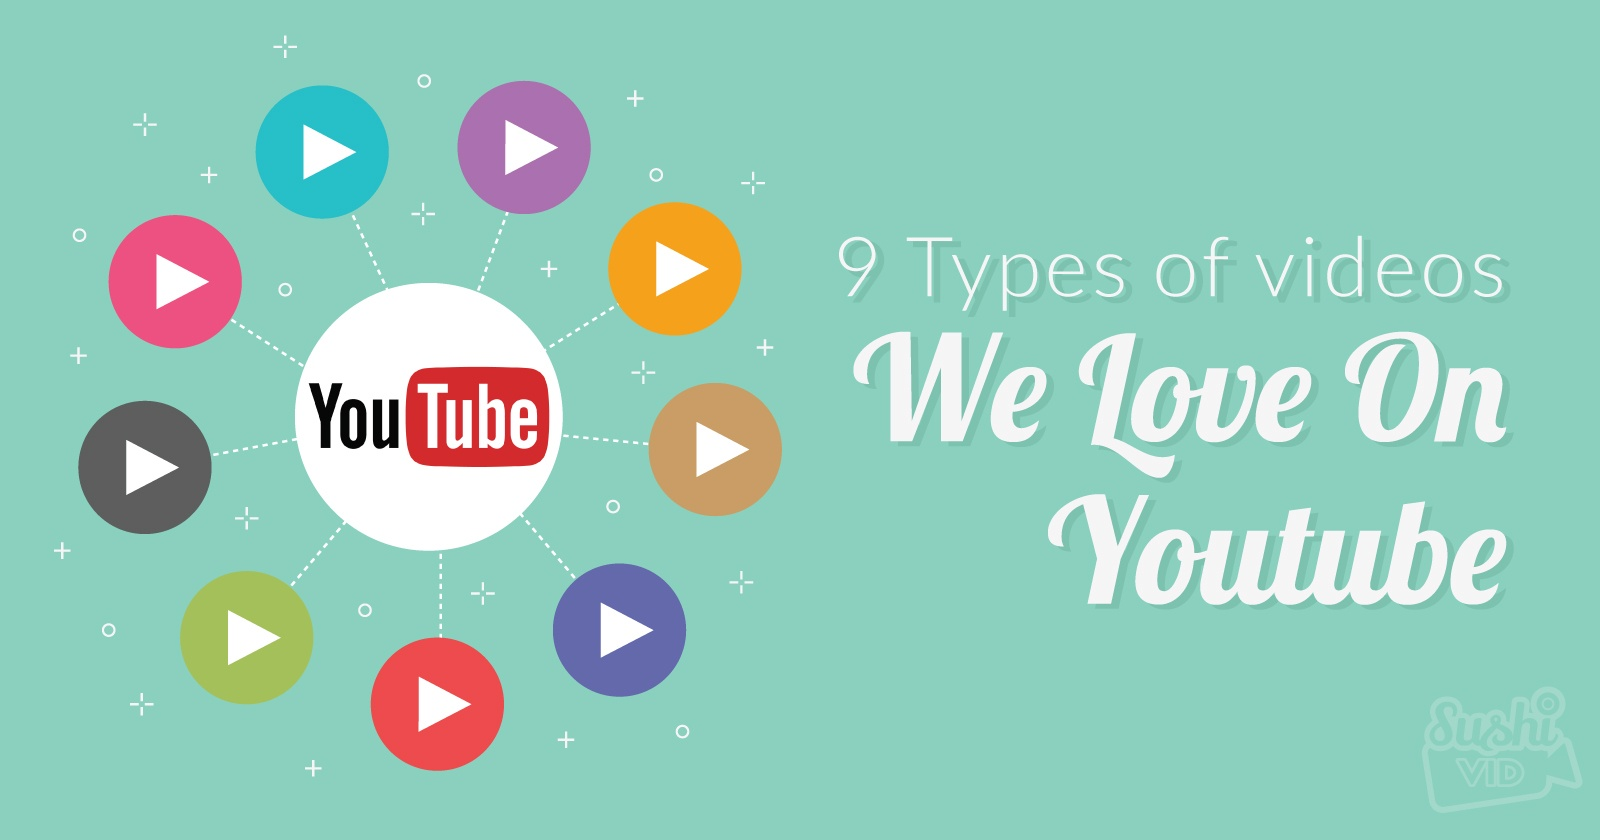 20151105 20  209 20most 20popular 20types 20of 20videos 20on 20youtube 20  20influencer 20marketing